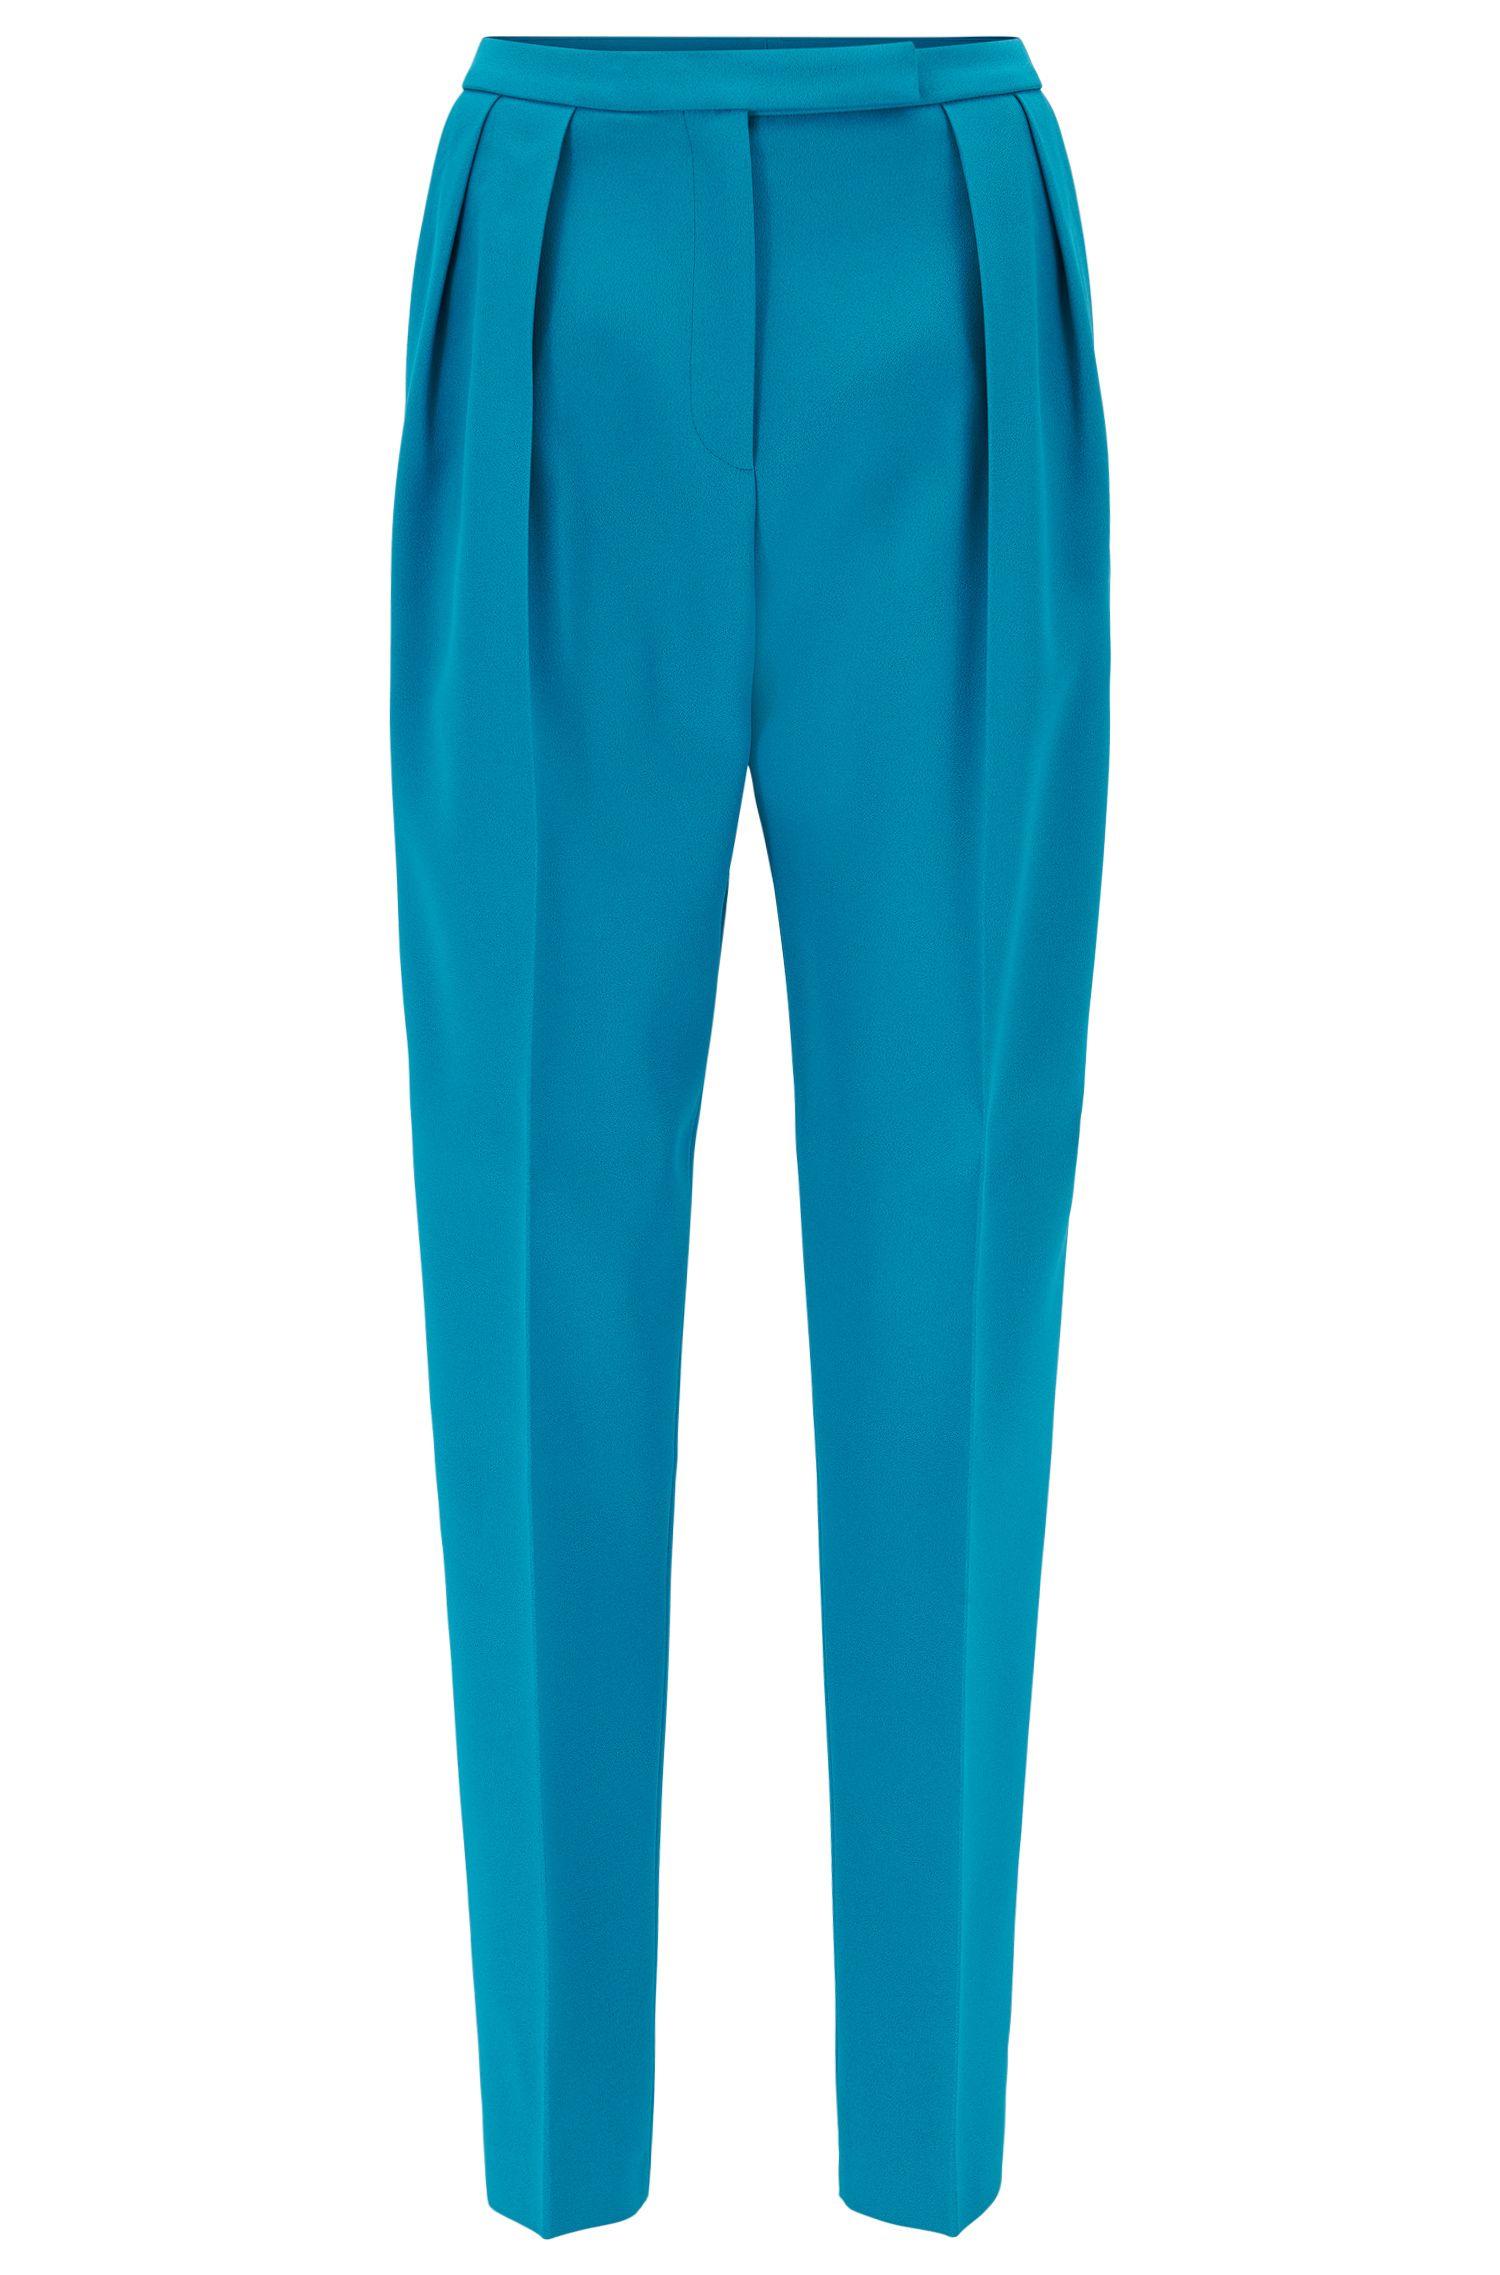 Gallery Collection Pleated Pant | Tupima GC